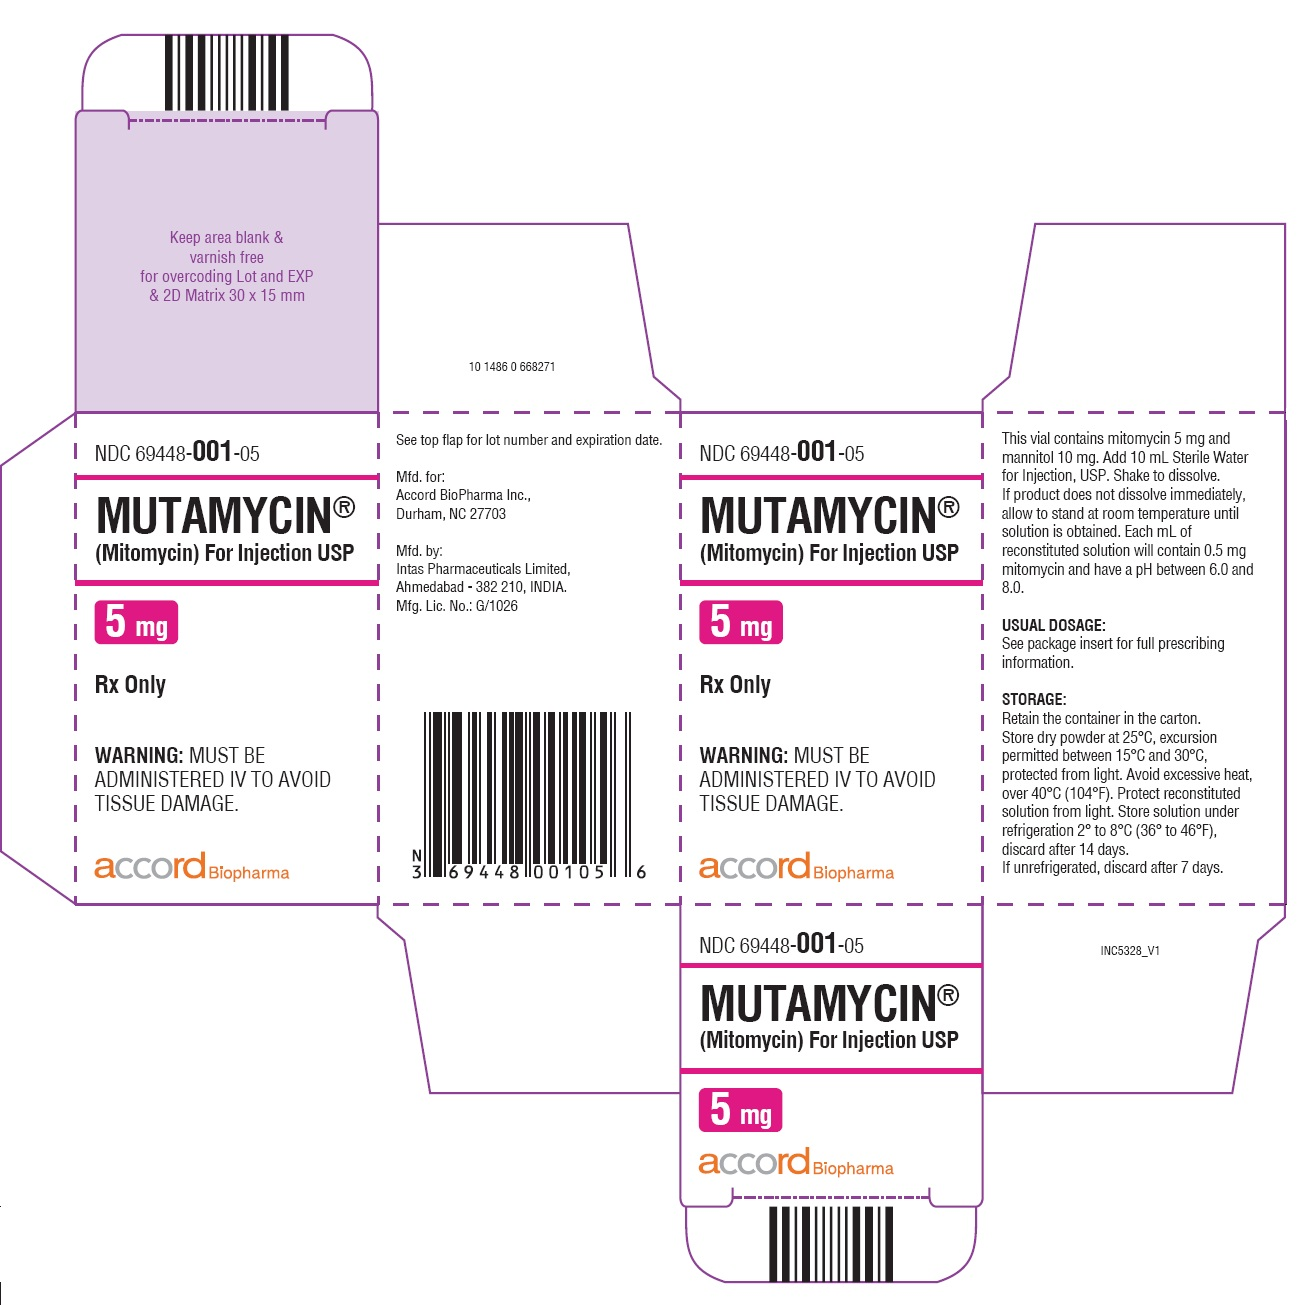 5mg carton label